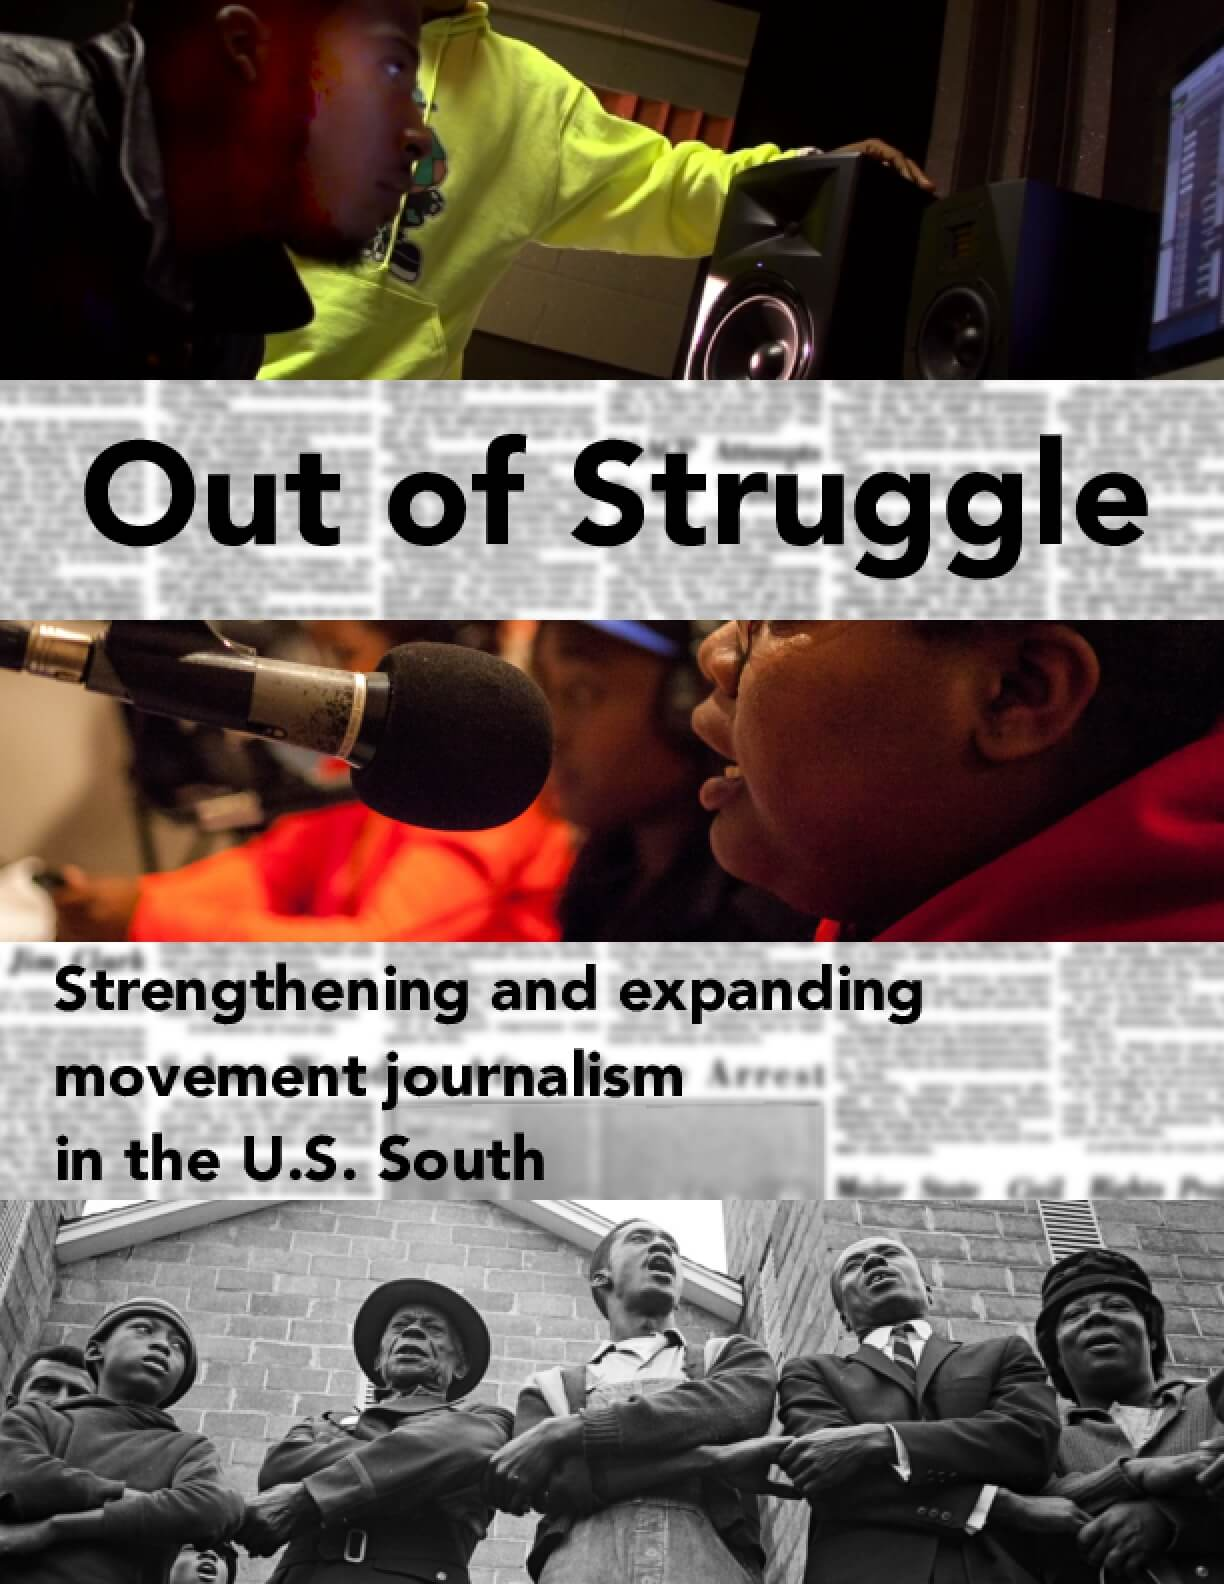 Out of Struggle: Strengthening and Expanding Movement Journalism in the U.S. South